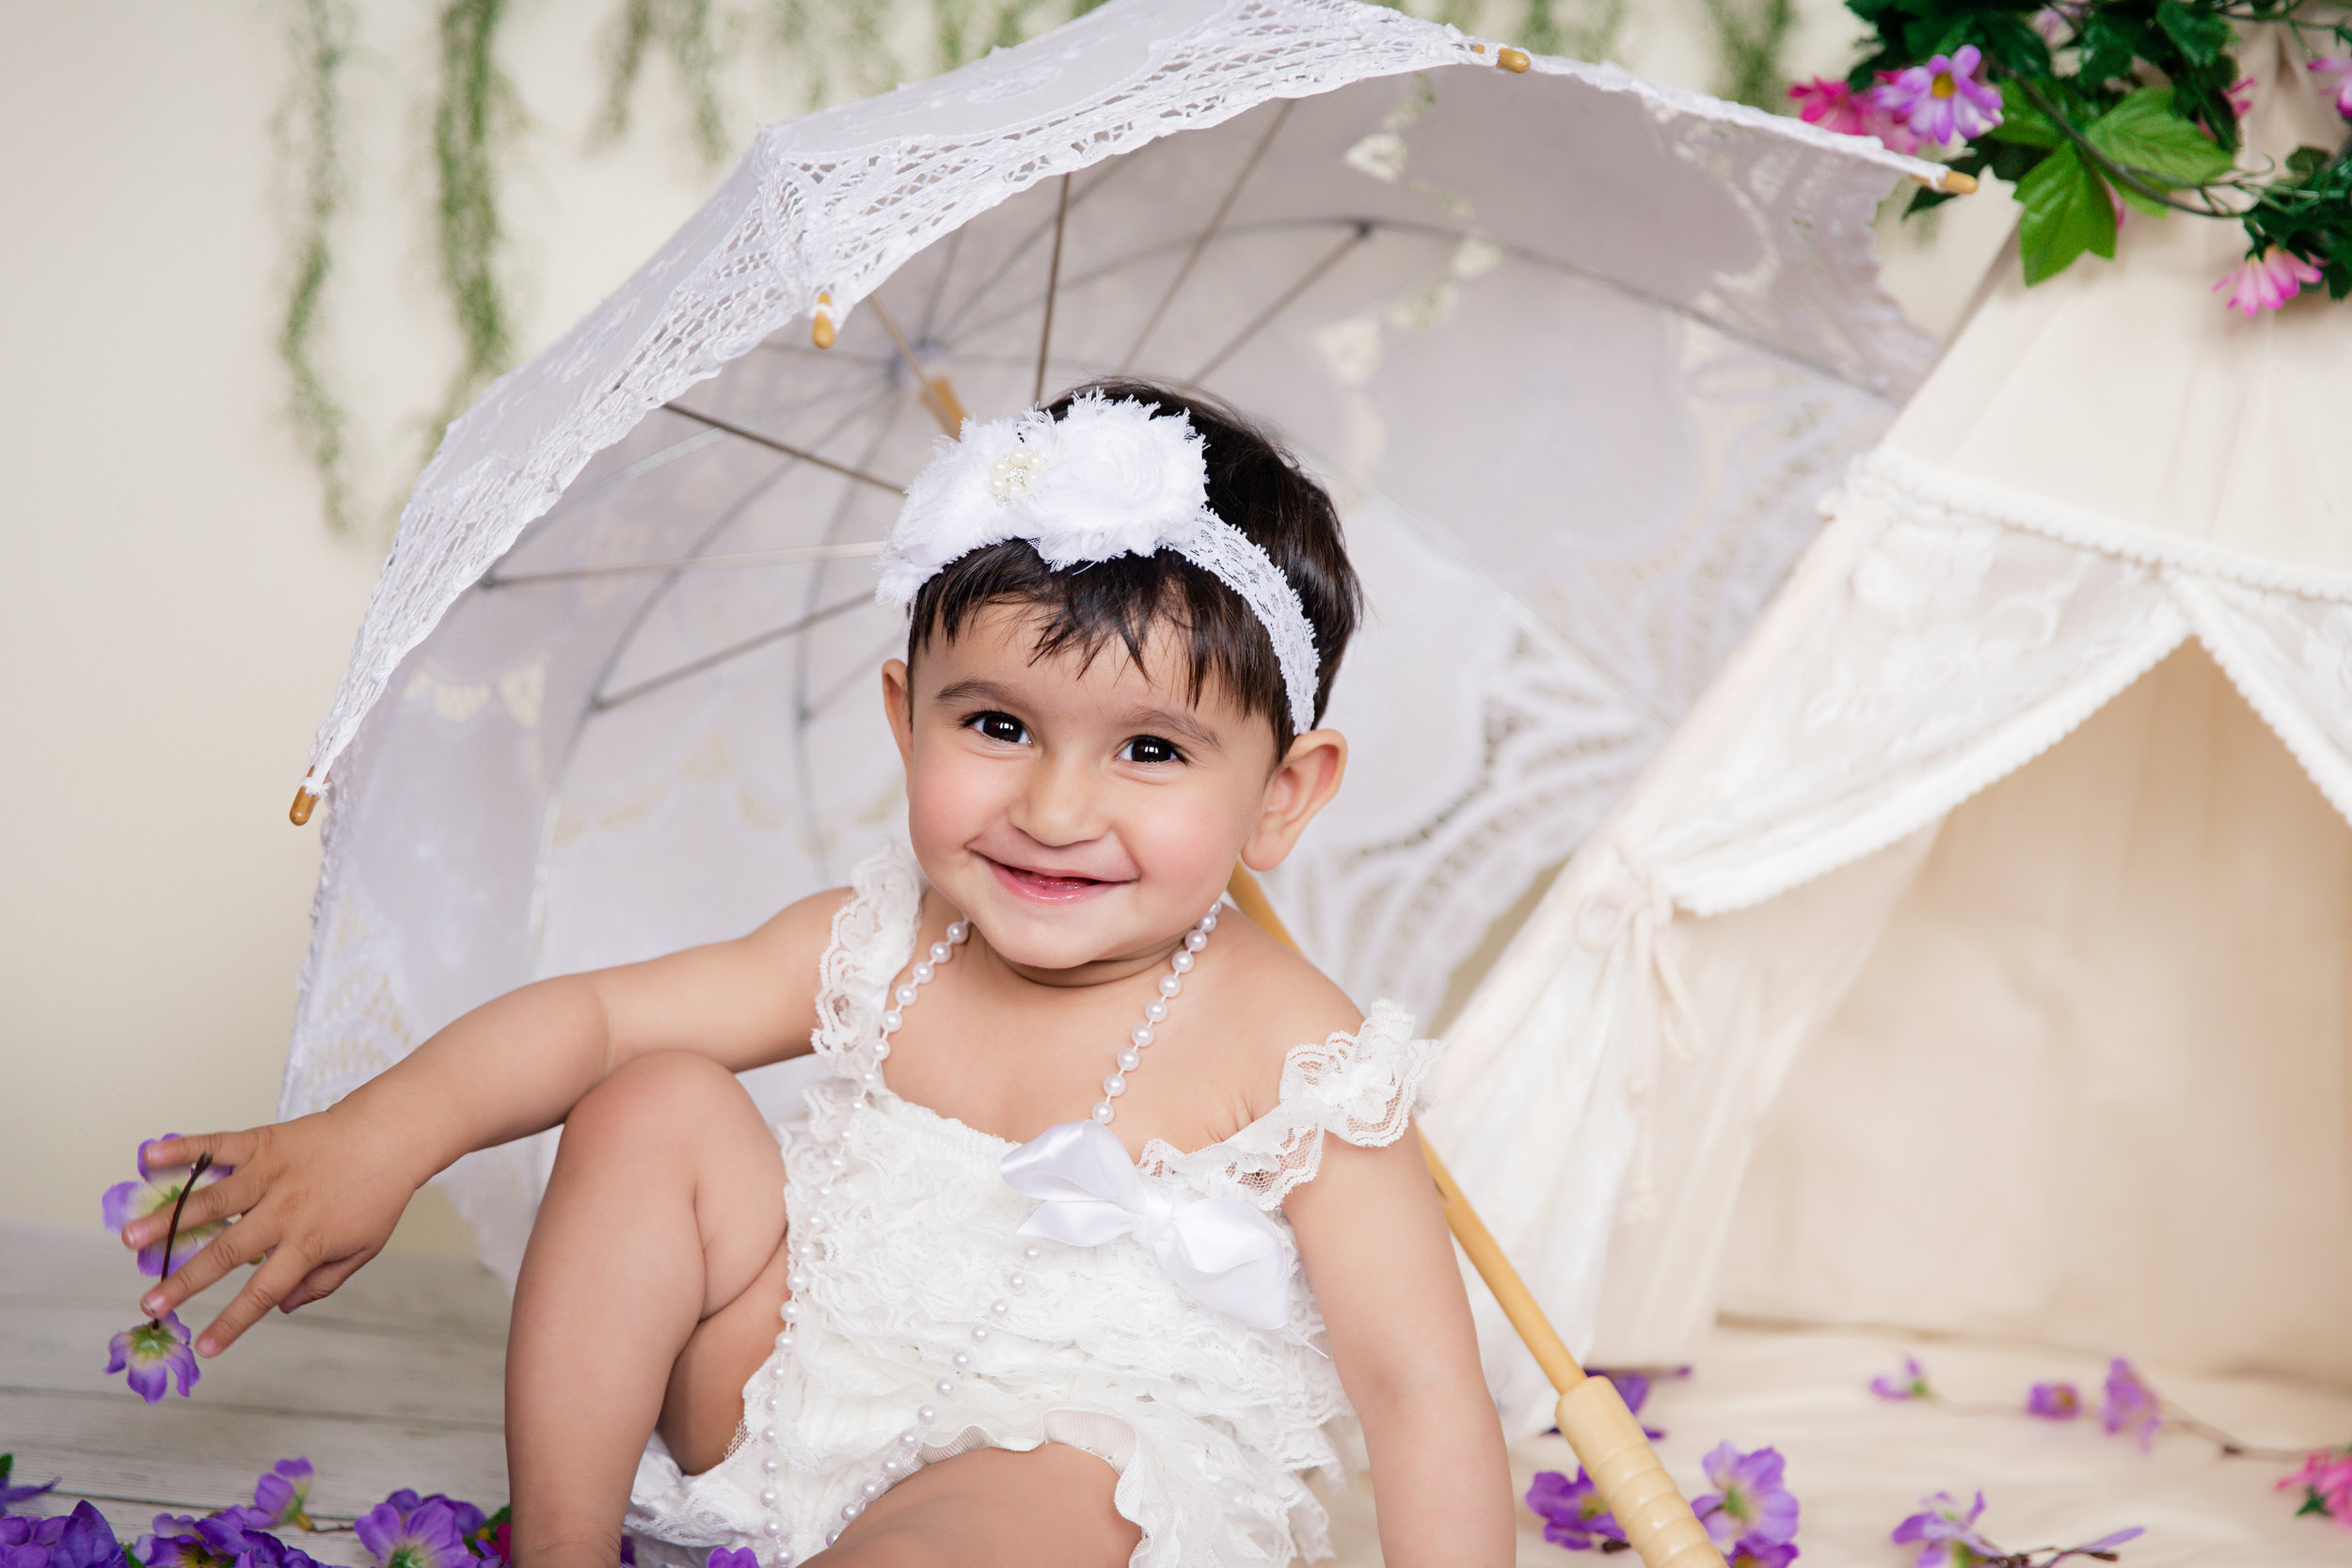 Baby girl wearing a white romper smiling.  Umbrella and tipi set up. 1st Birthday photoshoot ideas. Calgary Photographer. Milashka Photography